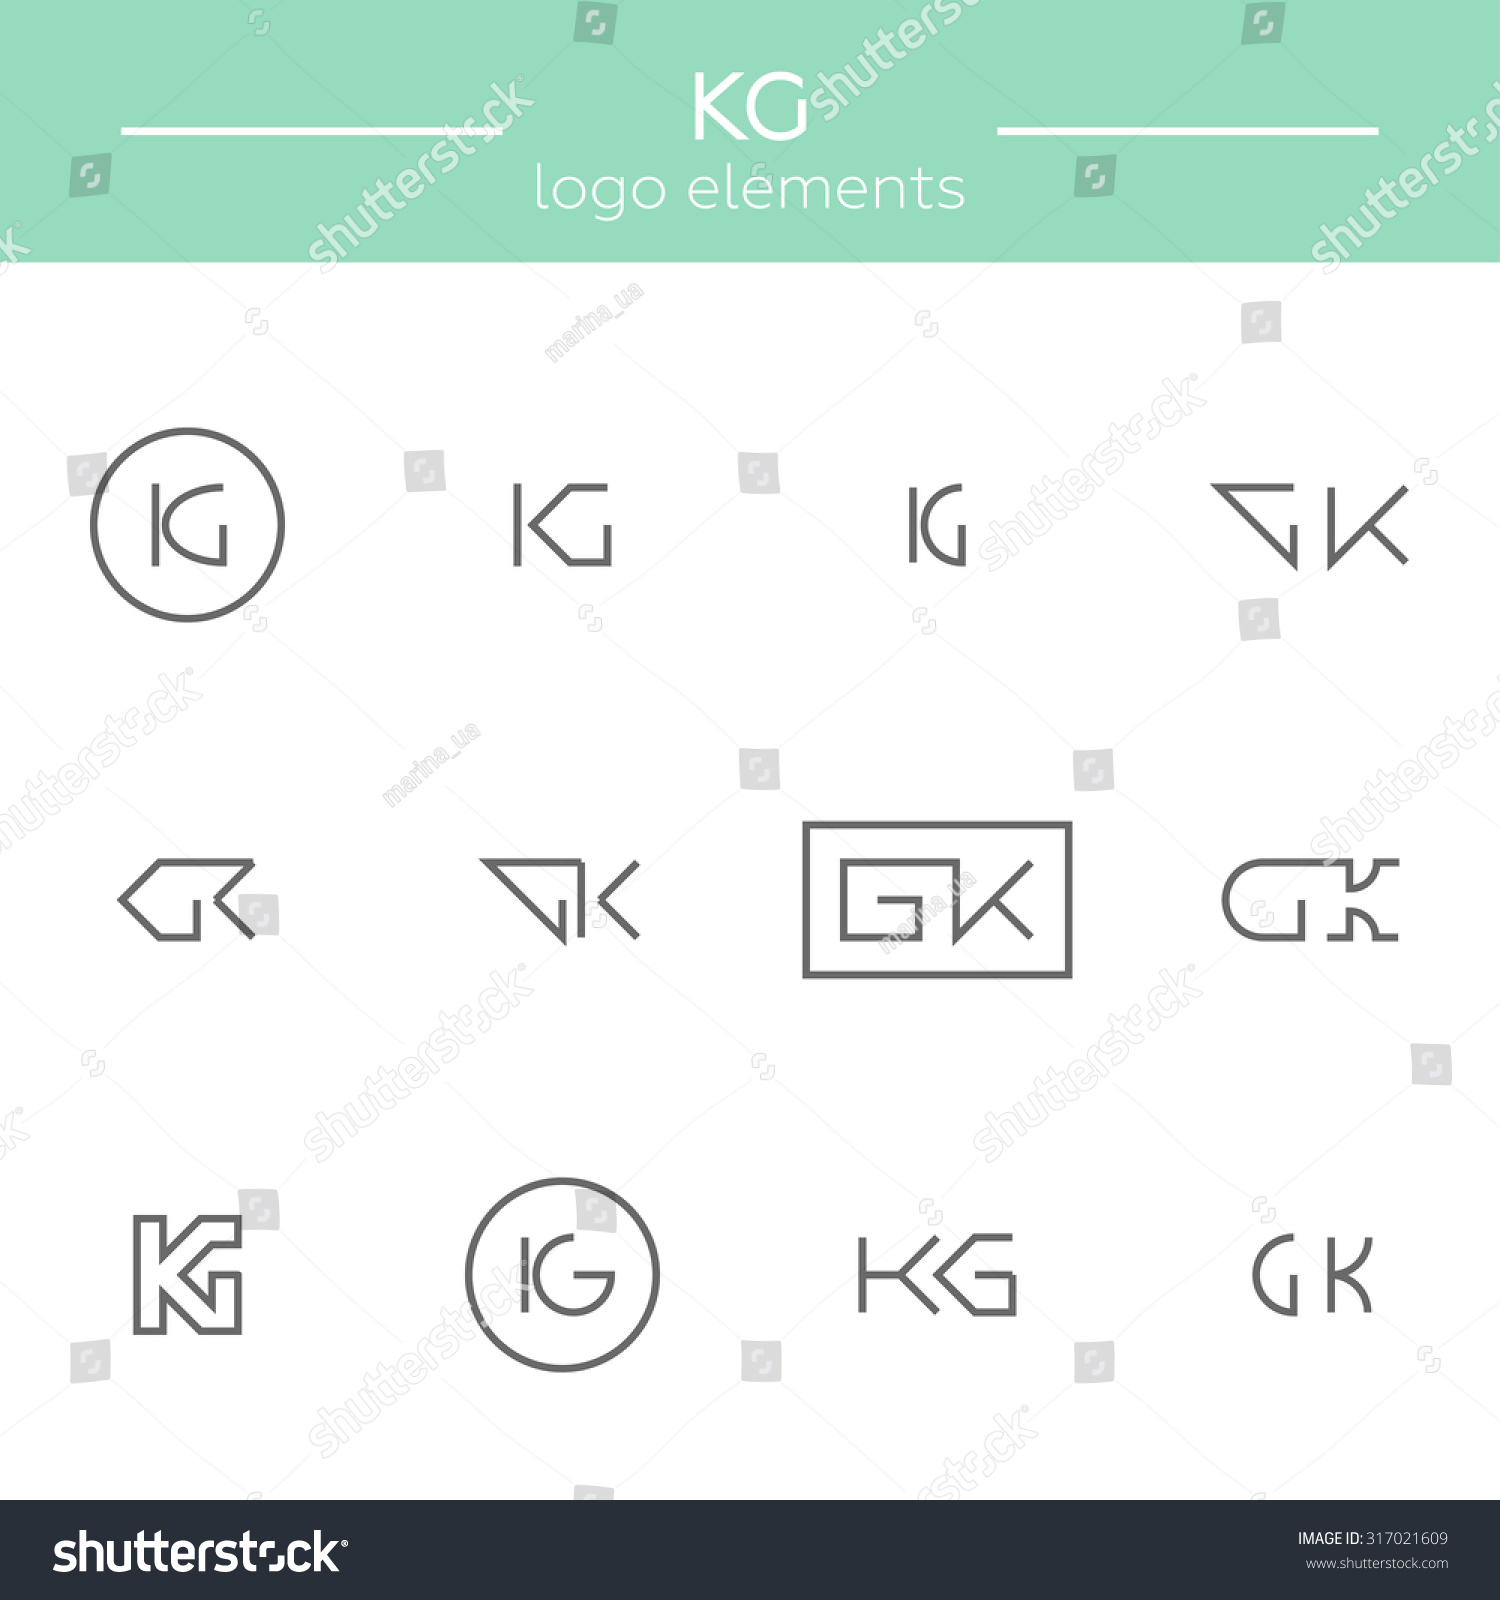 vector monogram of k and g letters template for logo of an architect or other